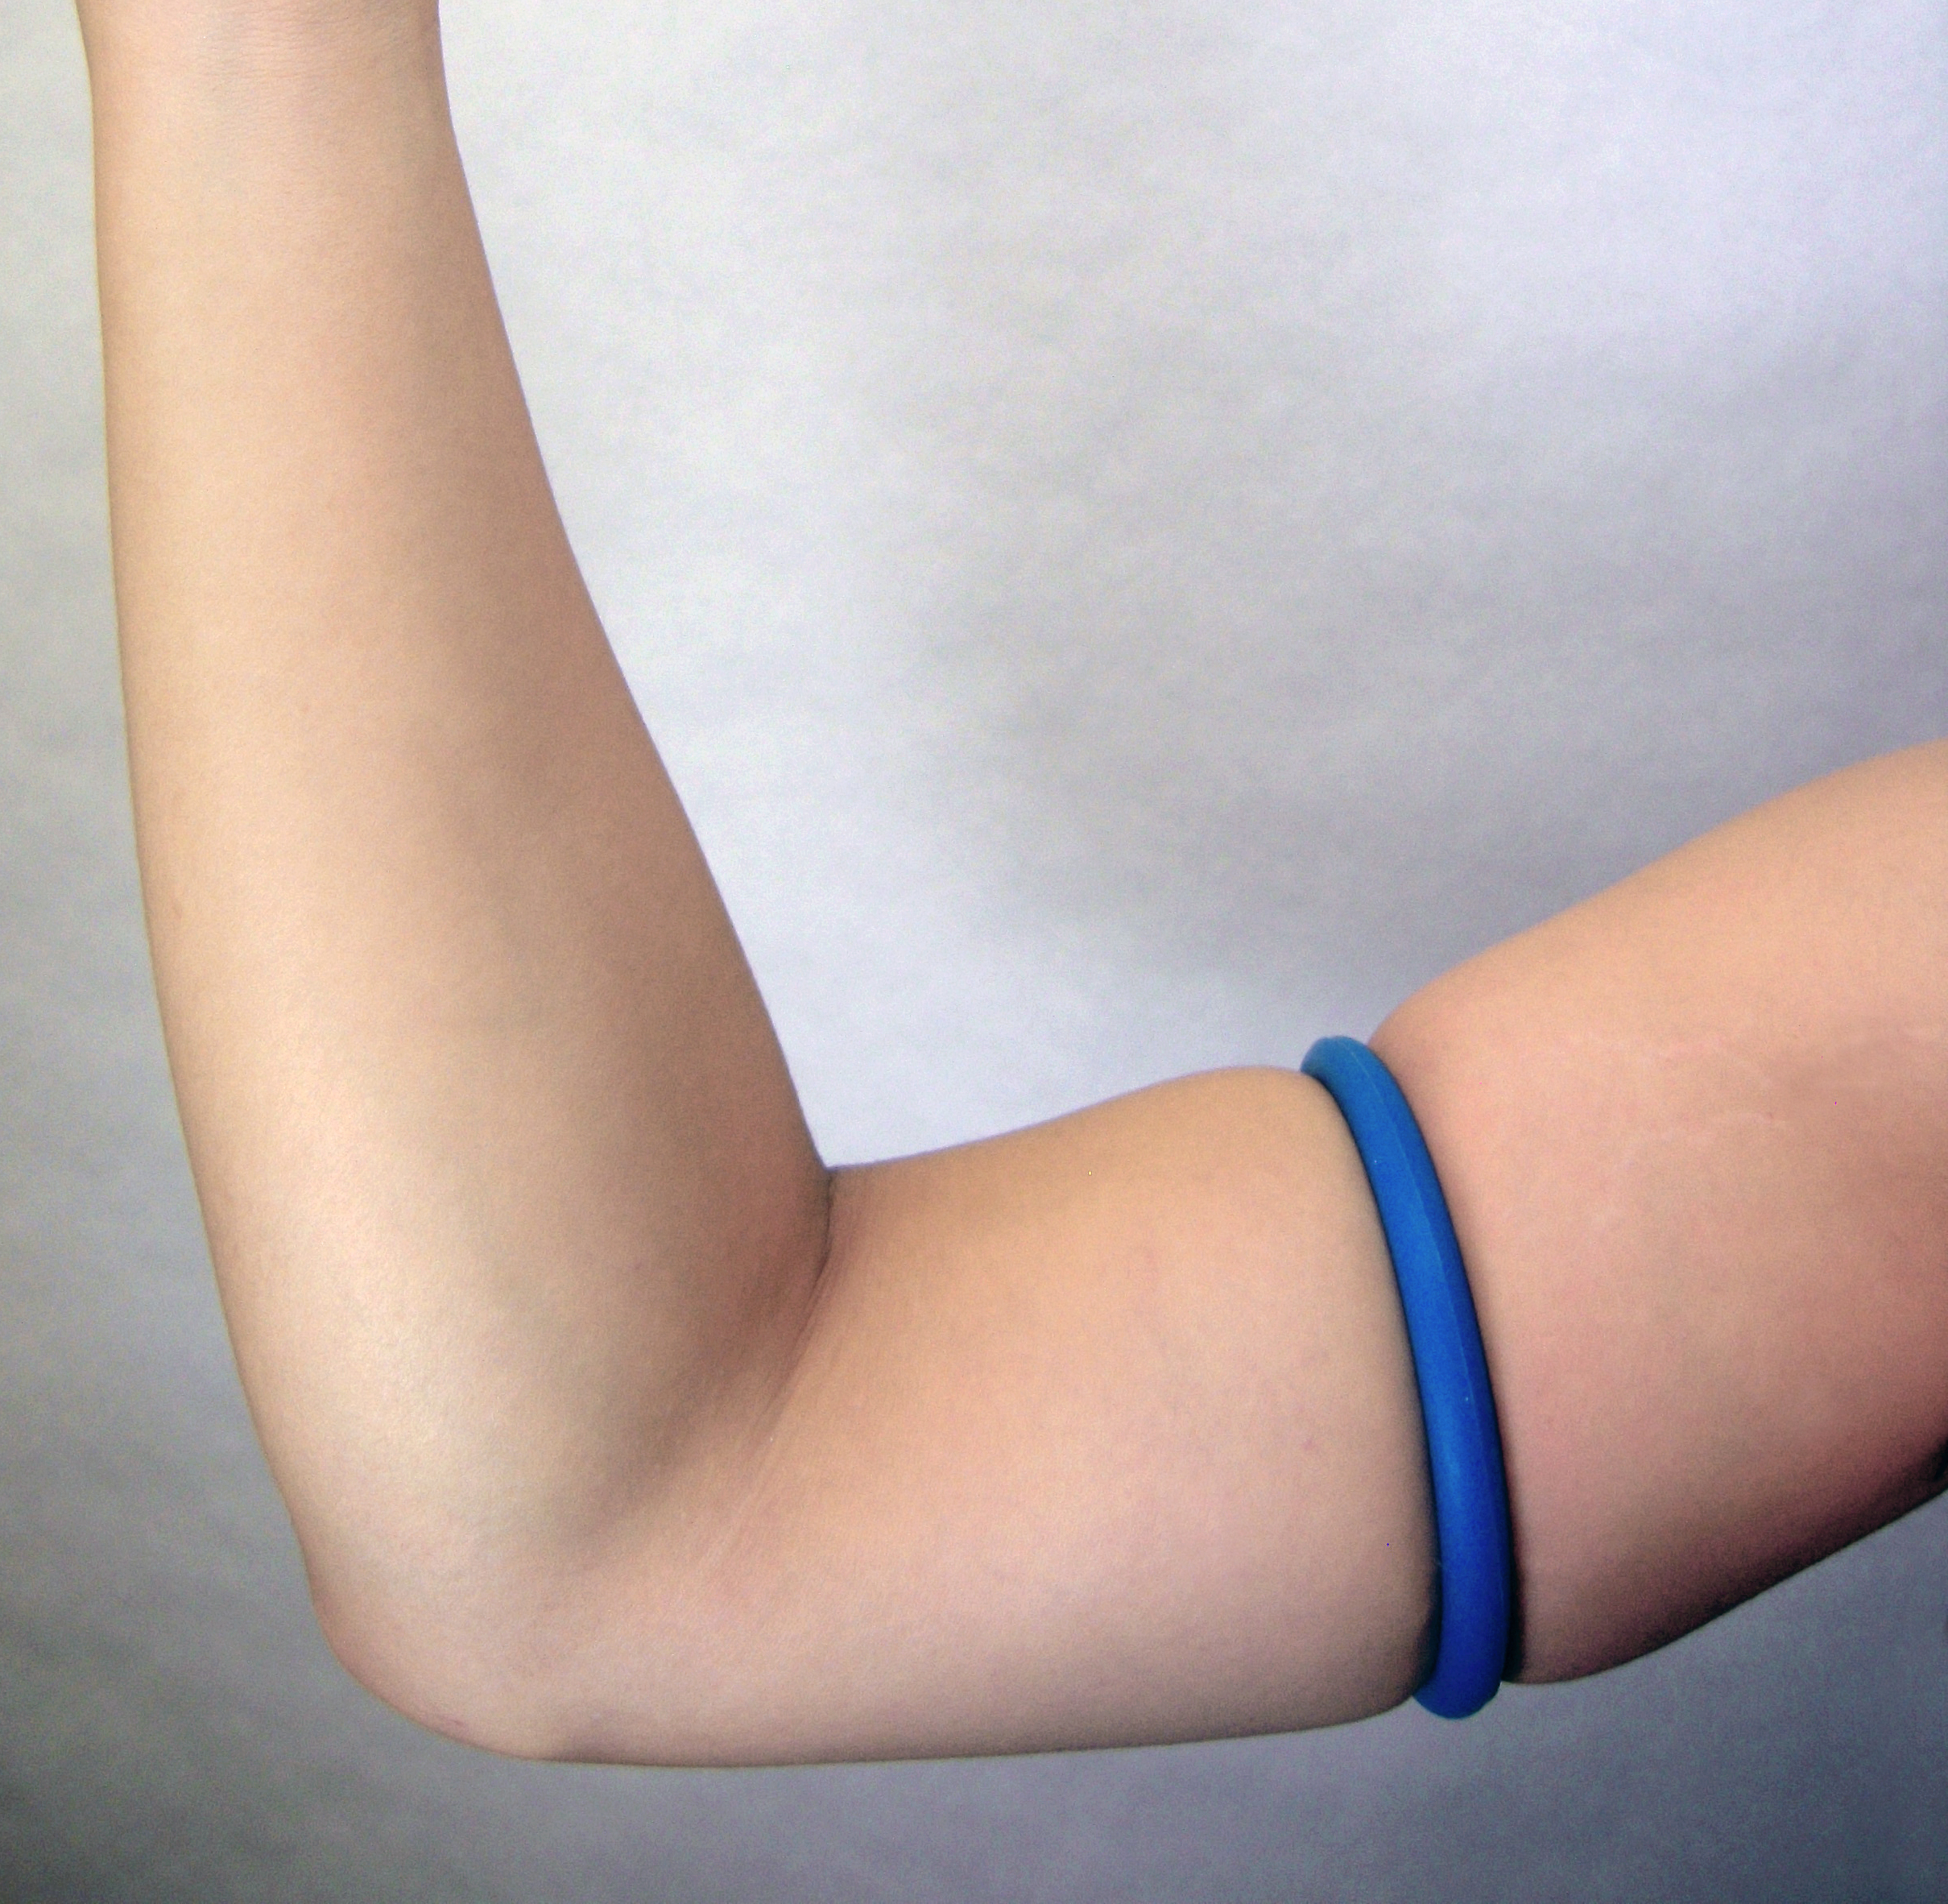 Elastic ring tourniquet on an arm